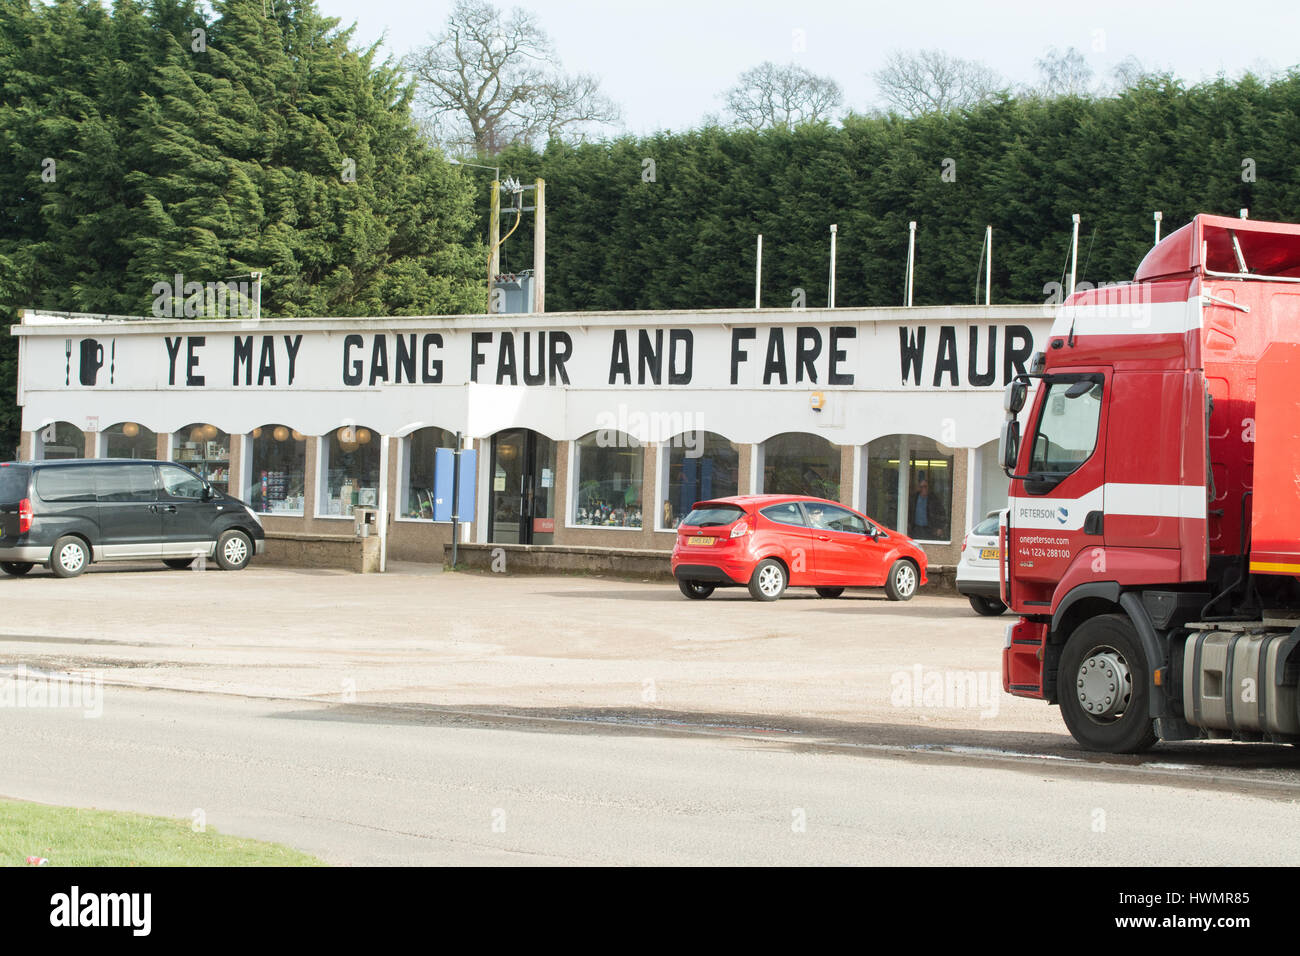 Stracathro Service Station, A90, Brechin, Scotland, UK - Ye may gang faur an fare waur - you may go further and - Stock Image